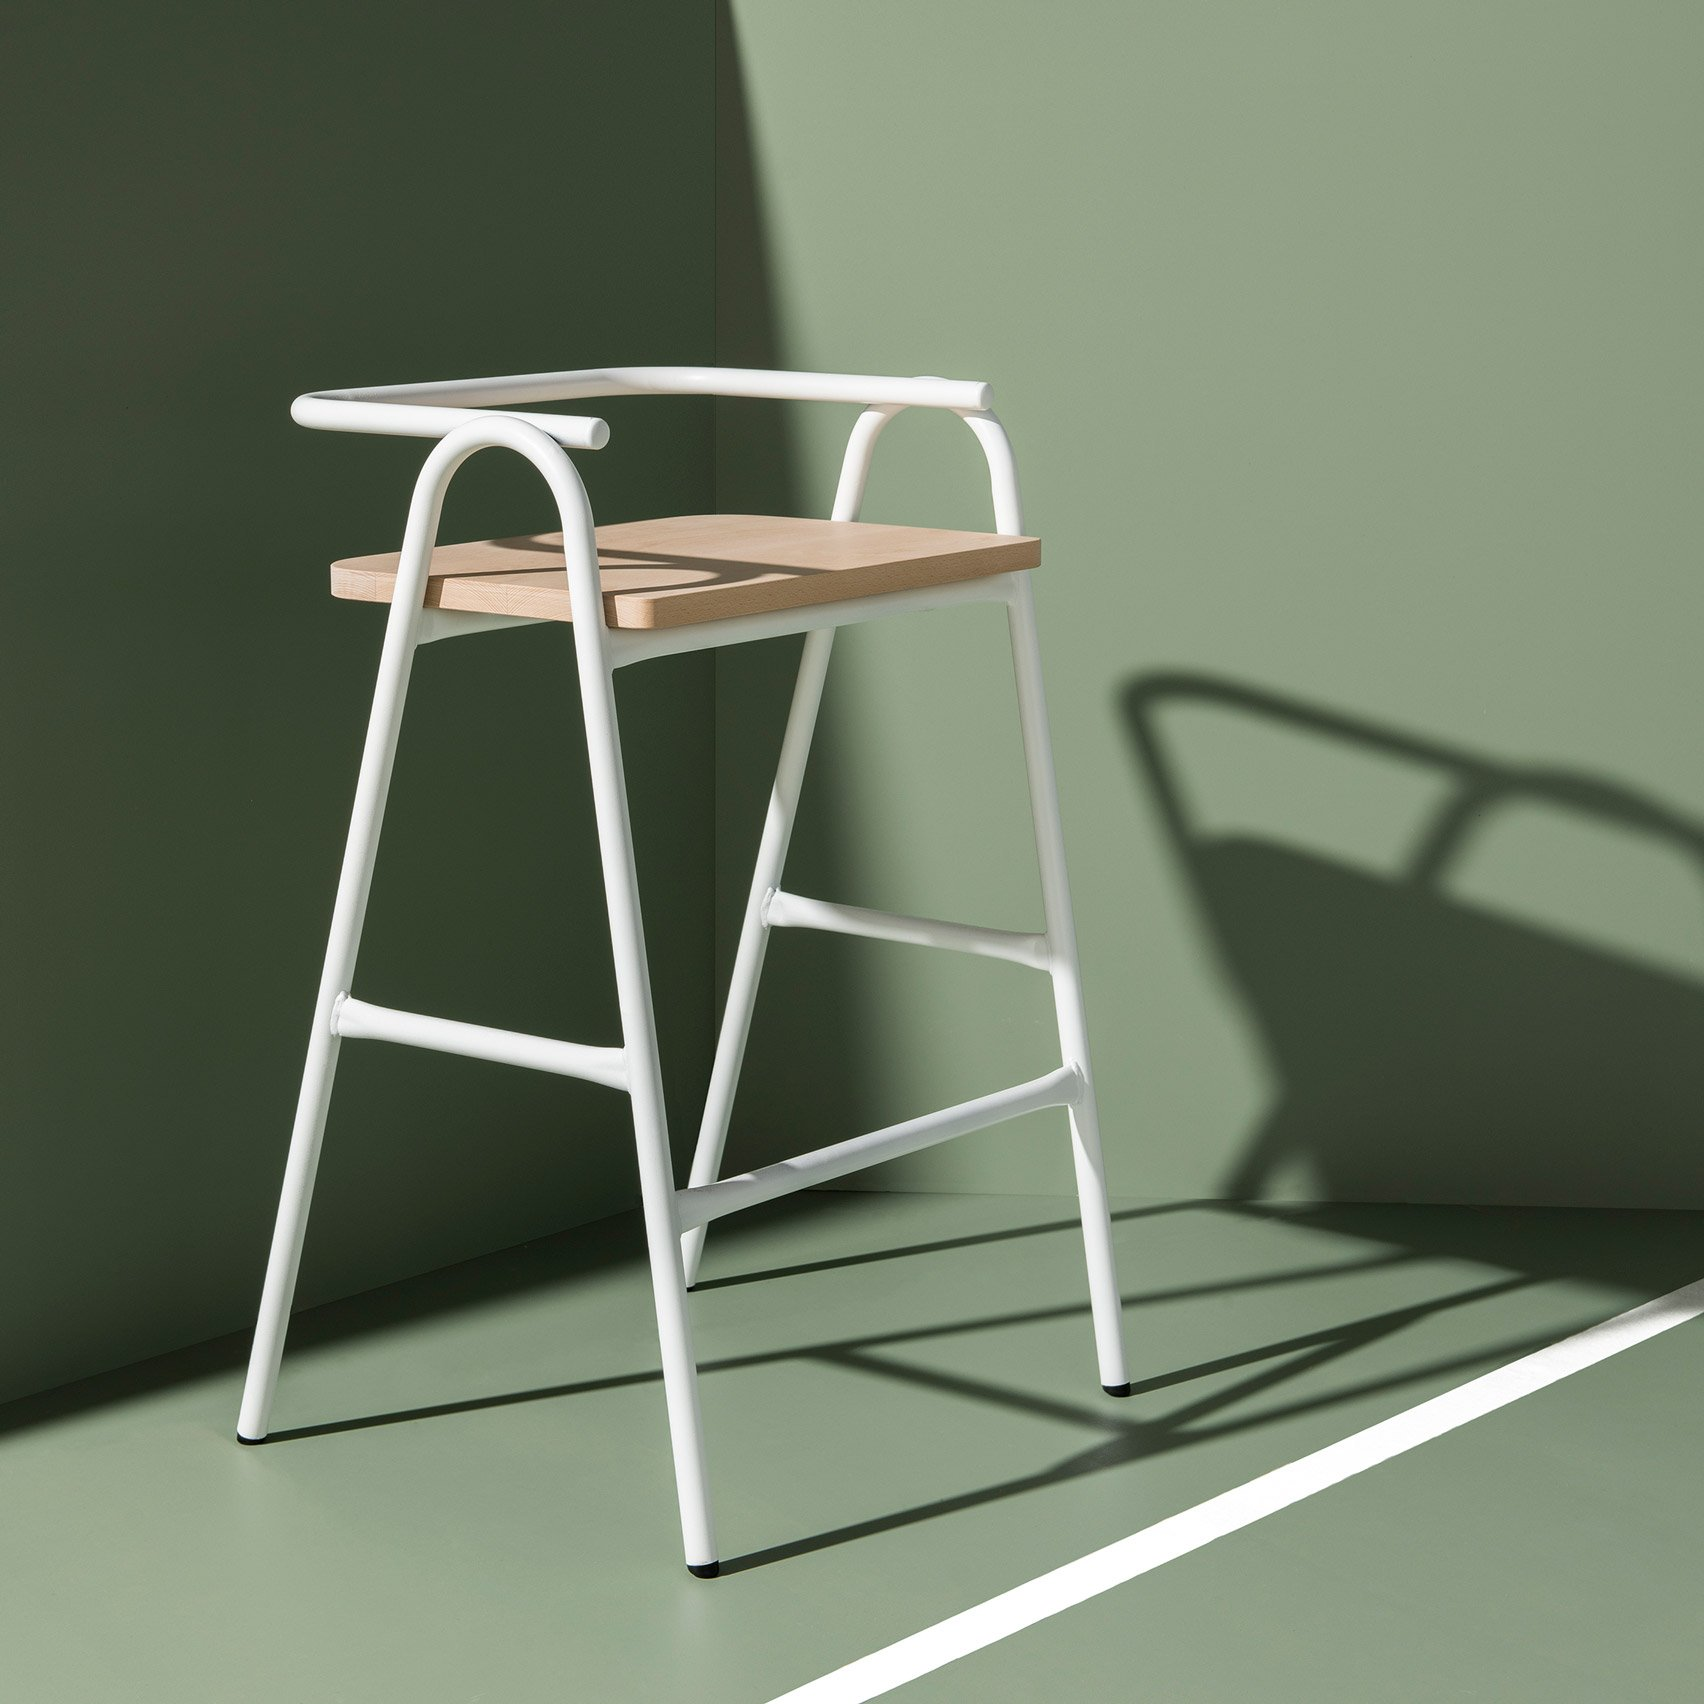 chair design  dezeen - dowel jones stretches and tweaks hurdle chair into whole seating collection